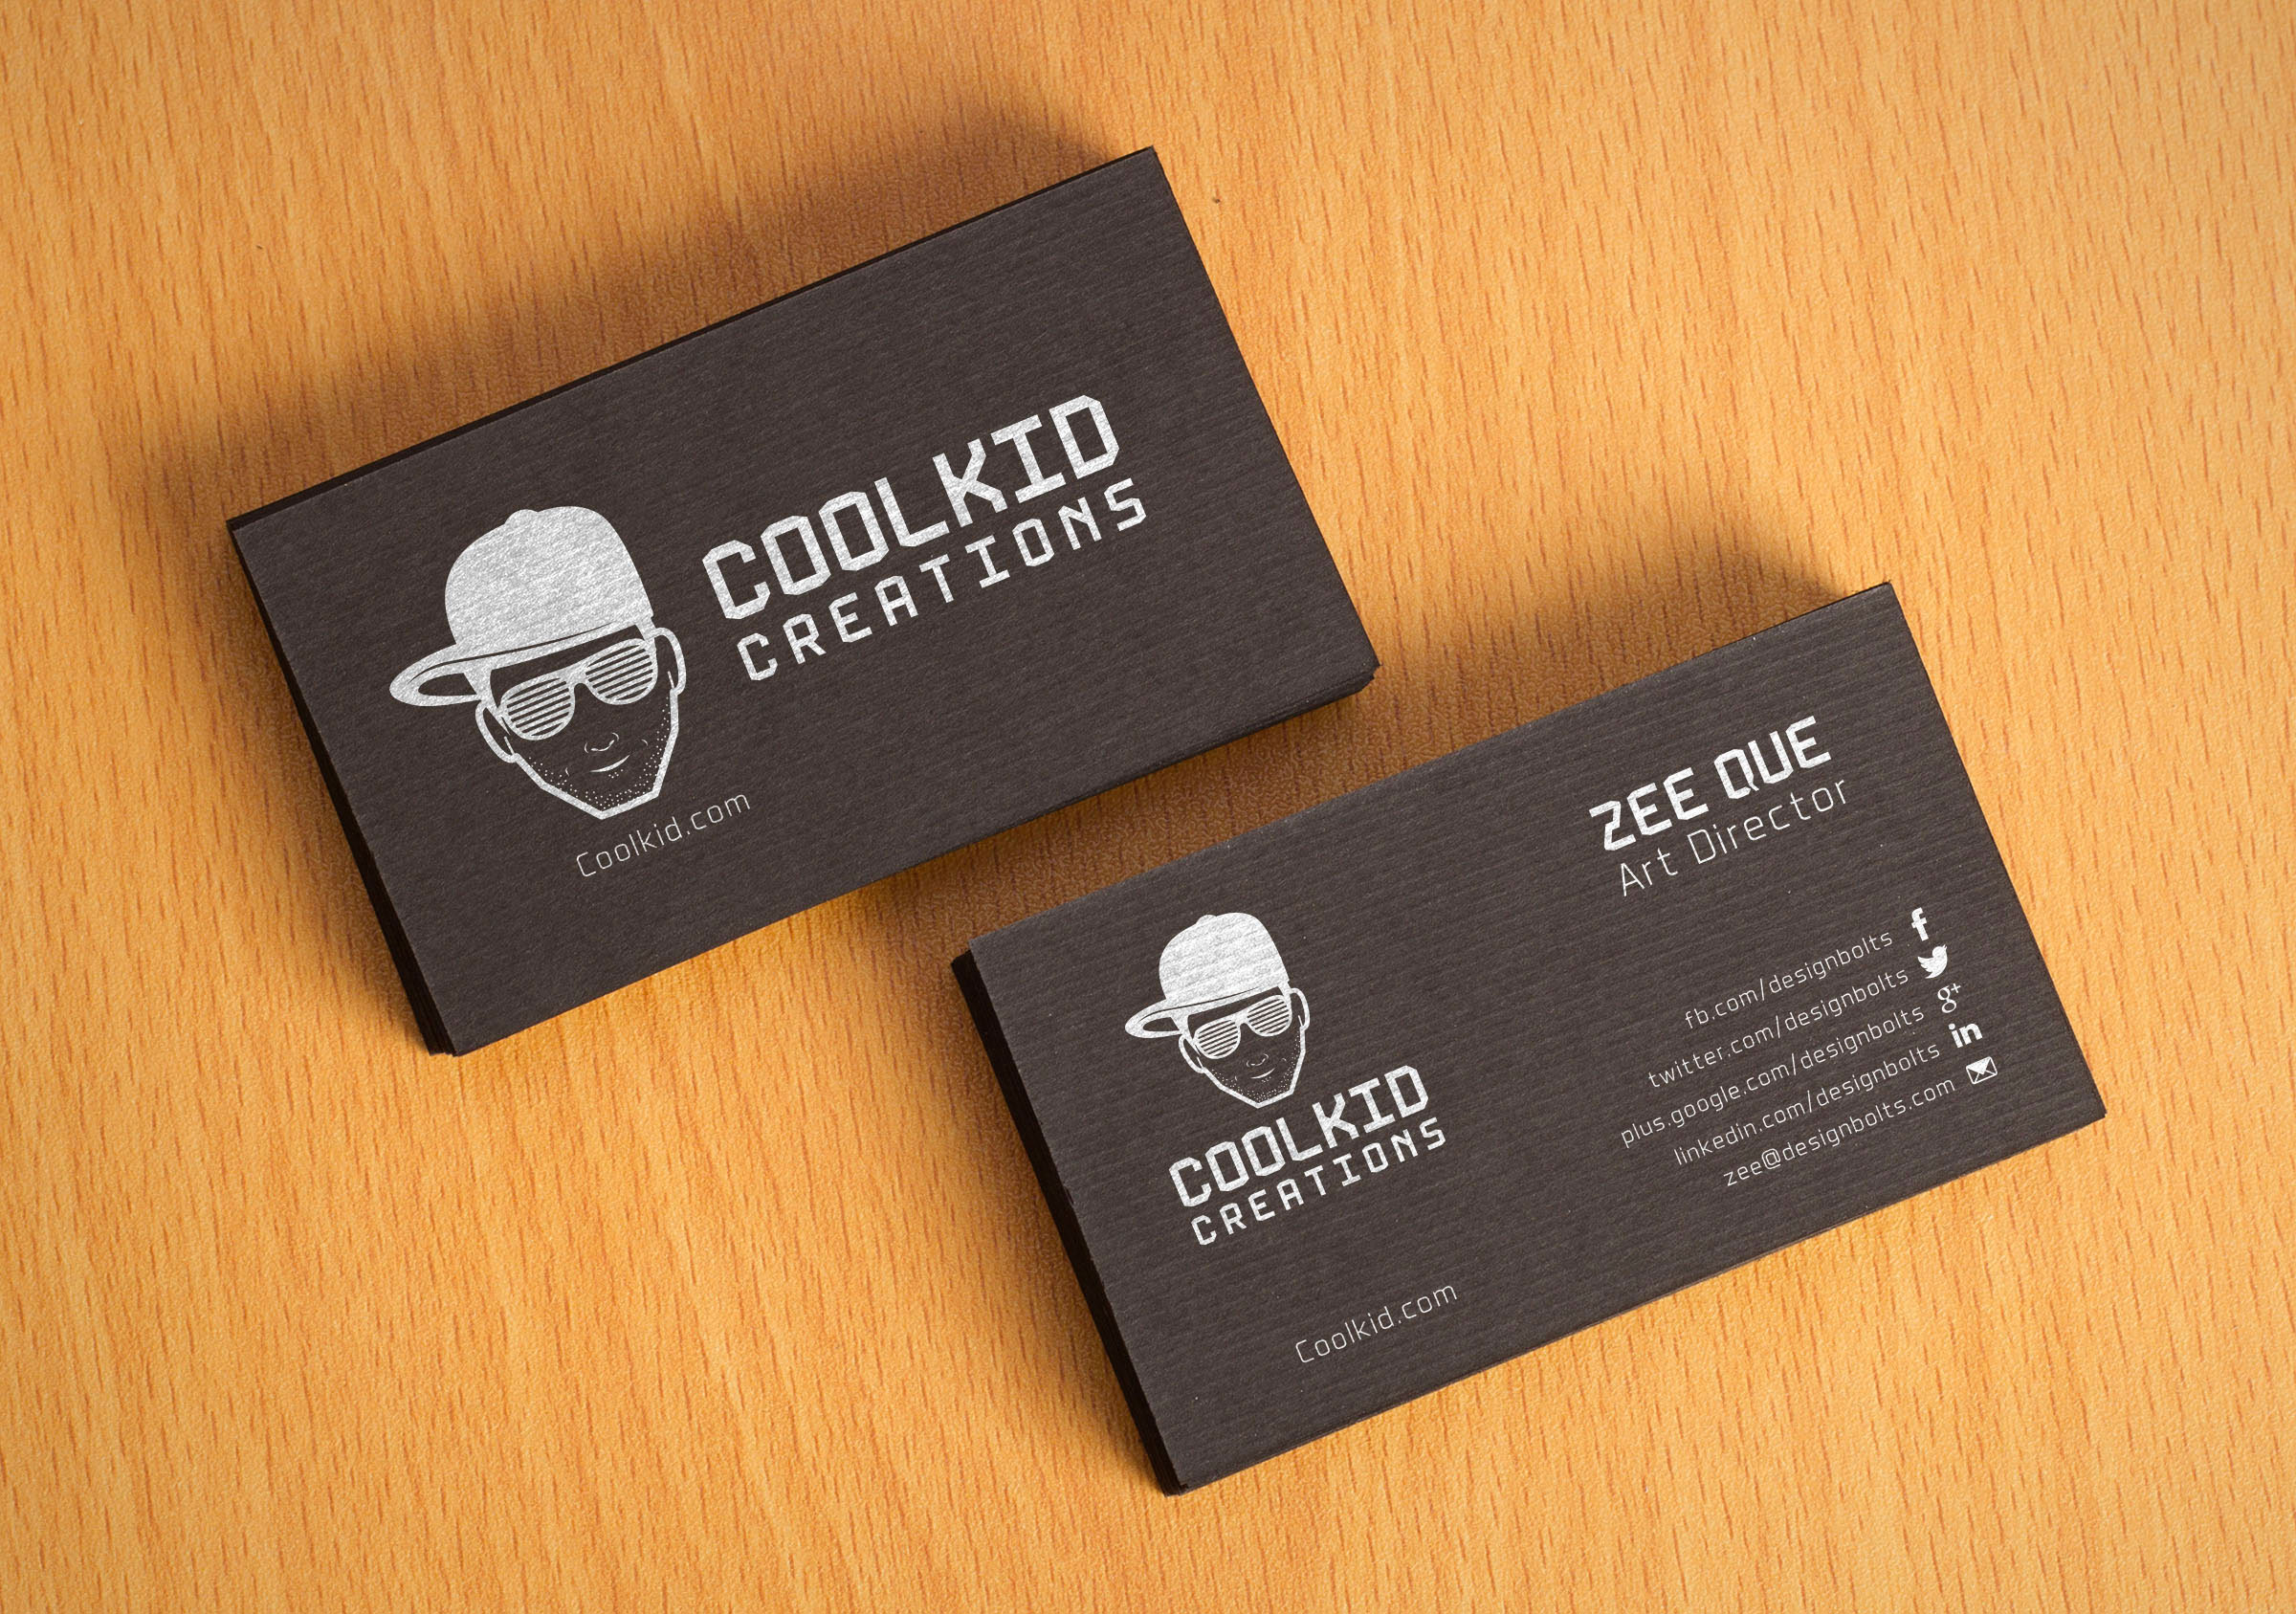 Free Black Textured Business Card Design Template Mockup PSD - Business card design template free